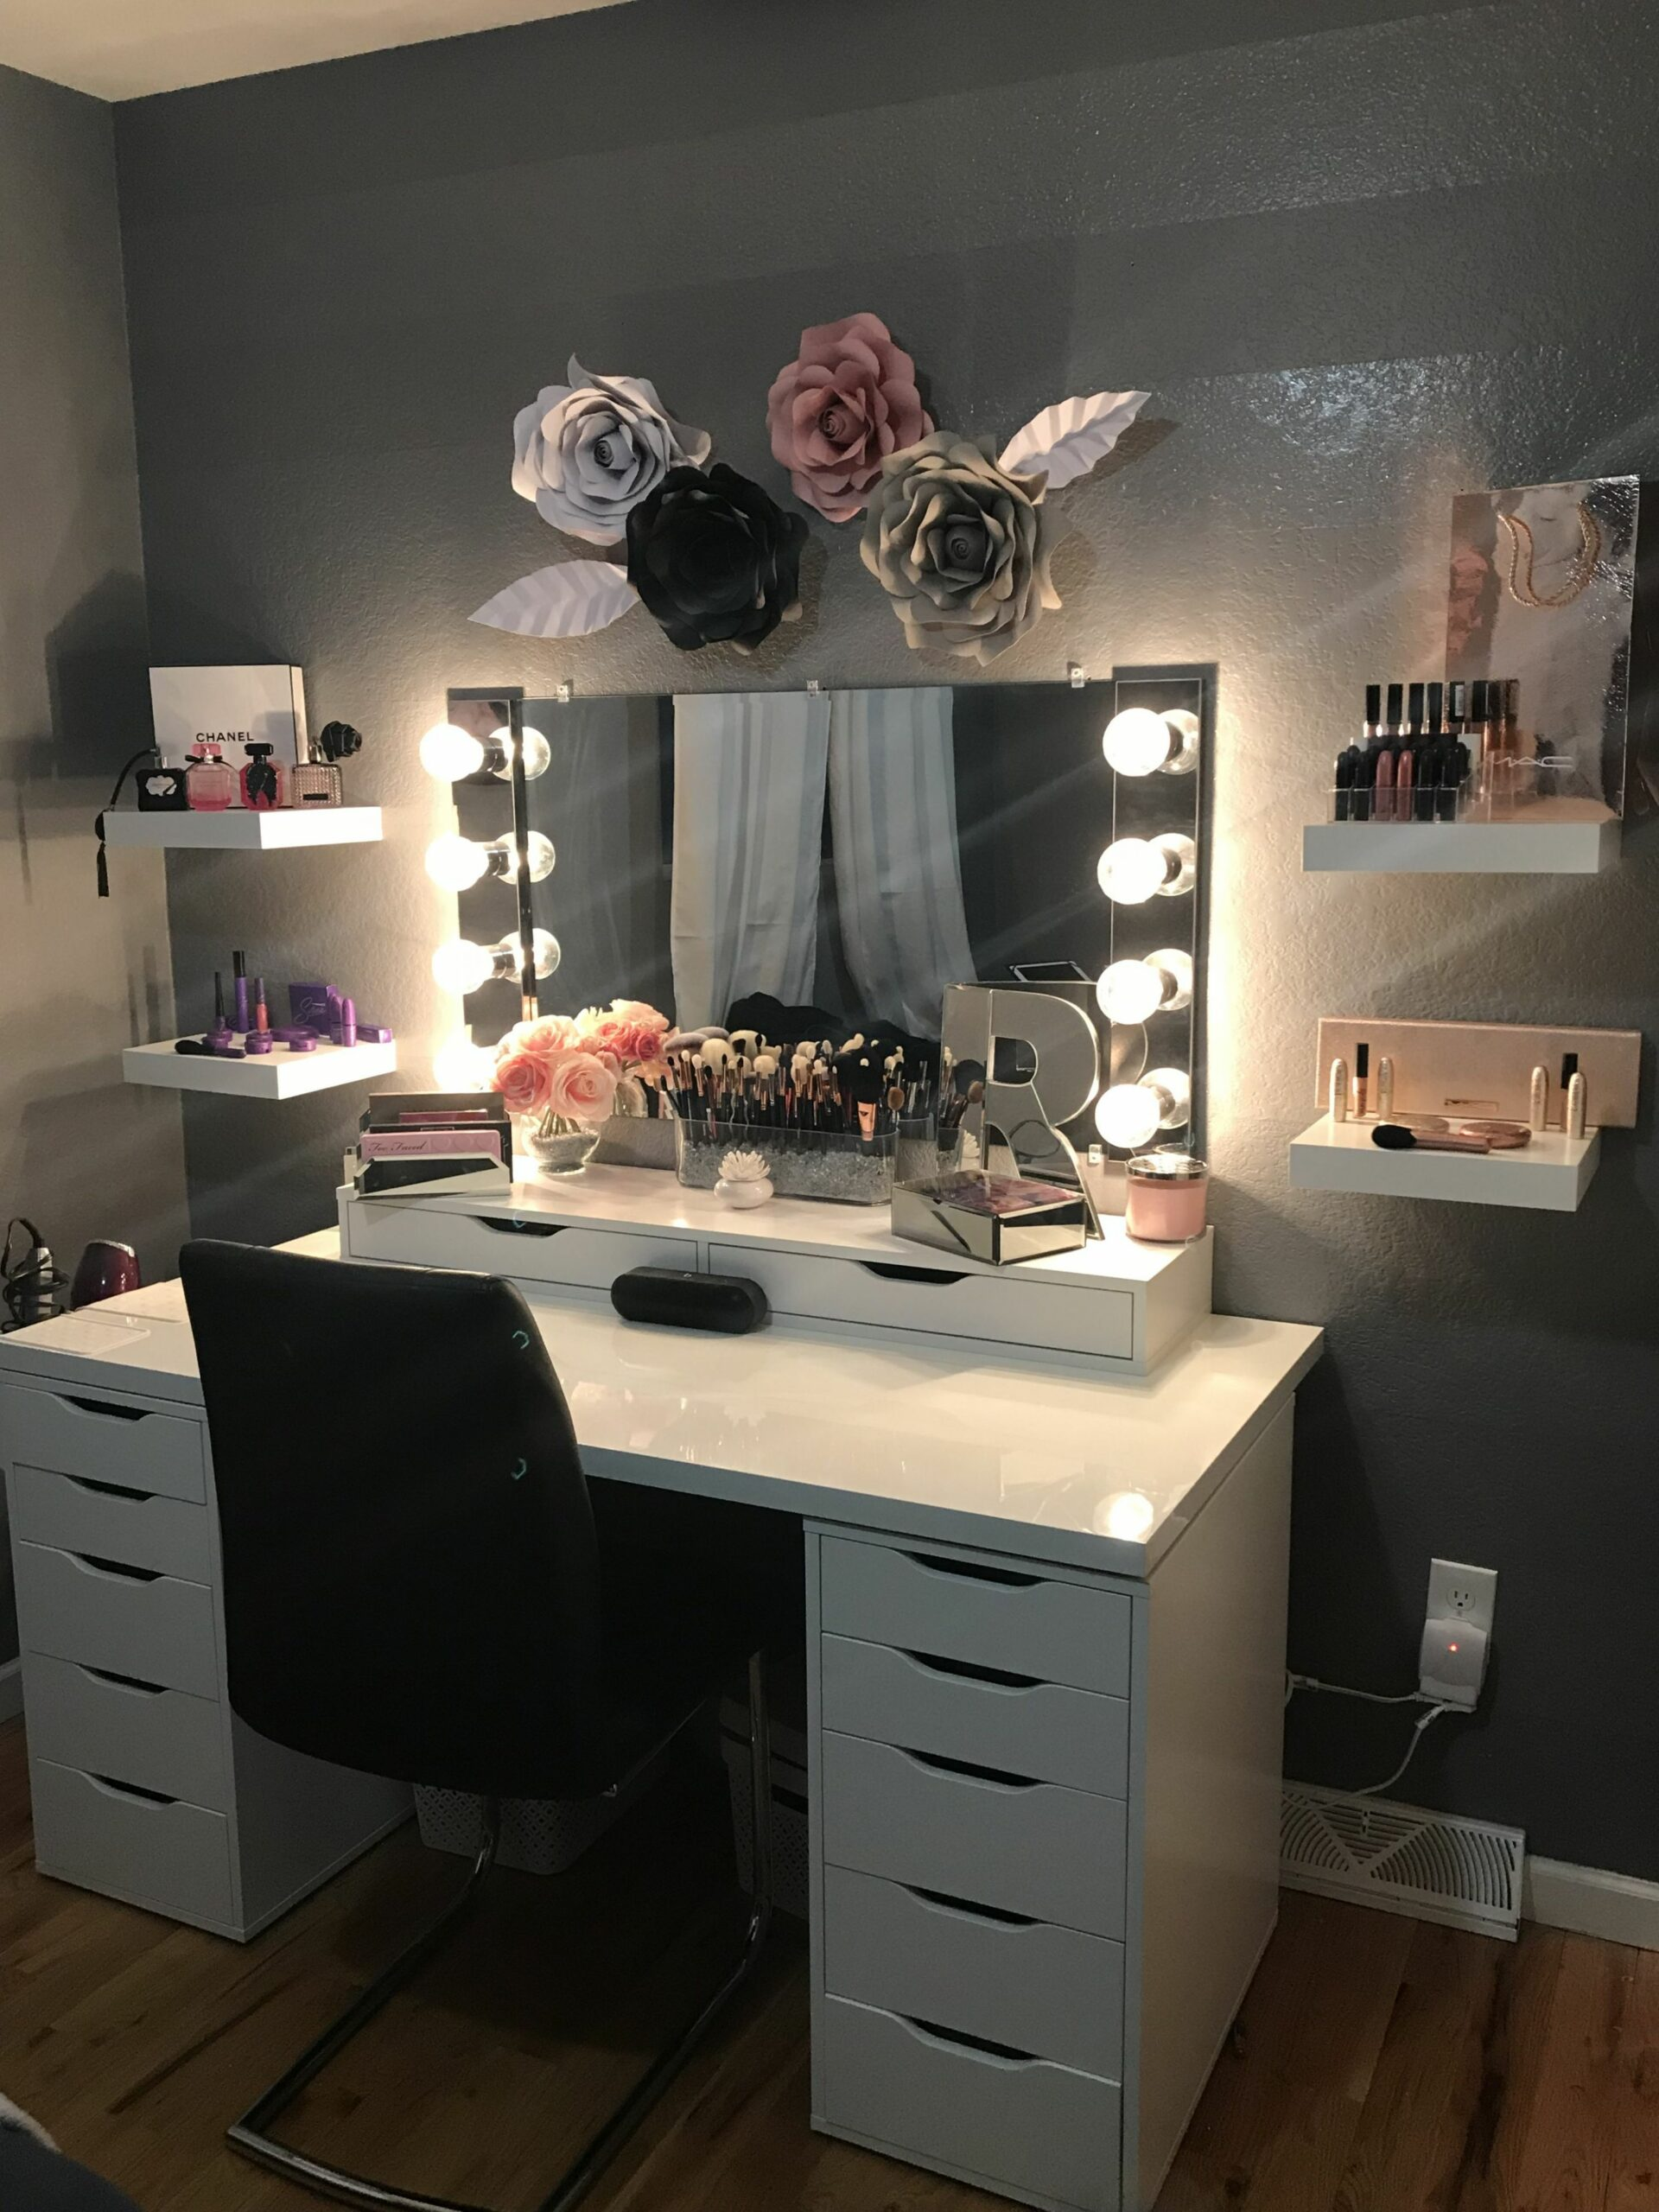 Vanity, Beauty Room, Ikea Alex, Makeup Room, Paper Roses, decor ..